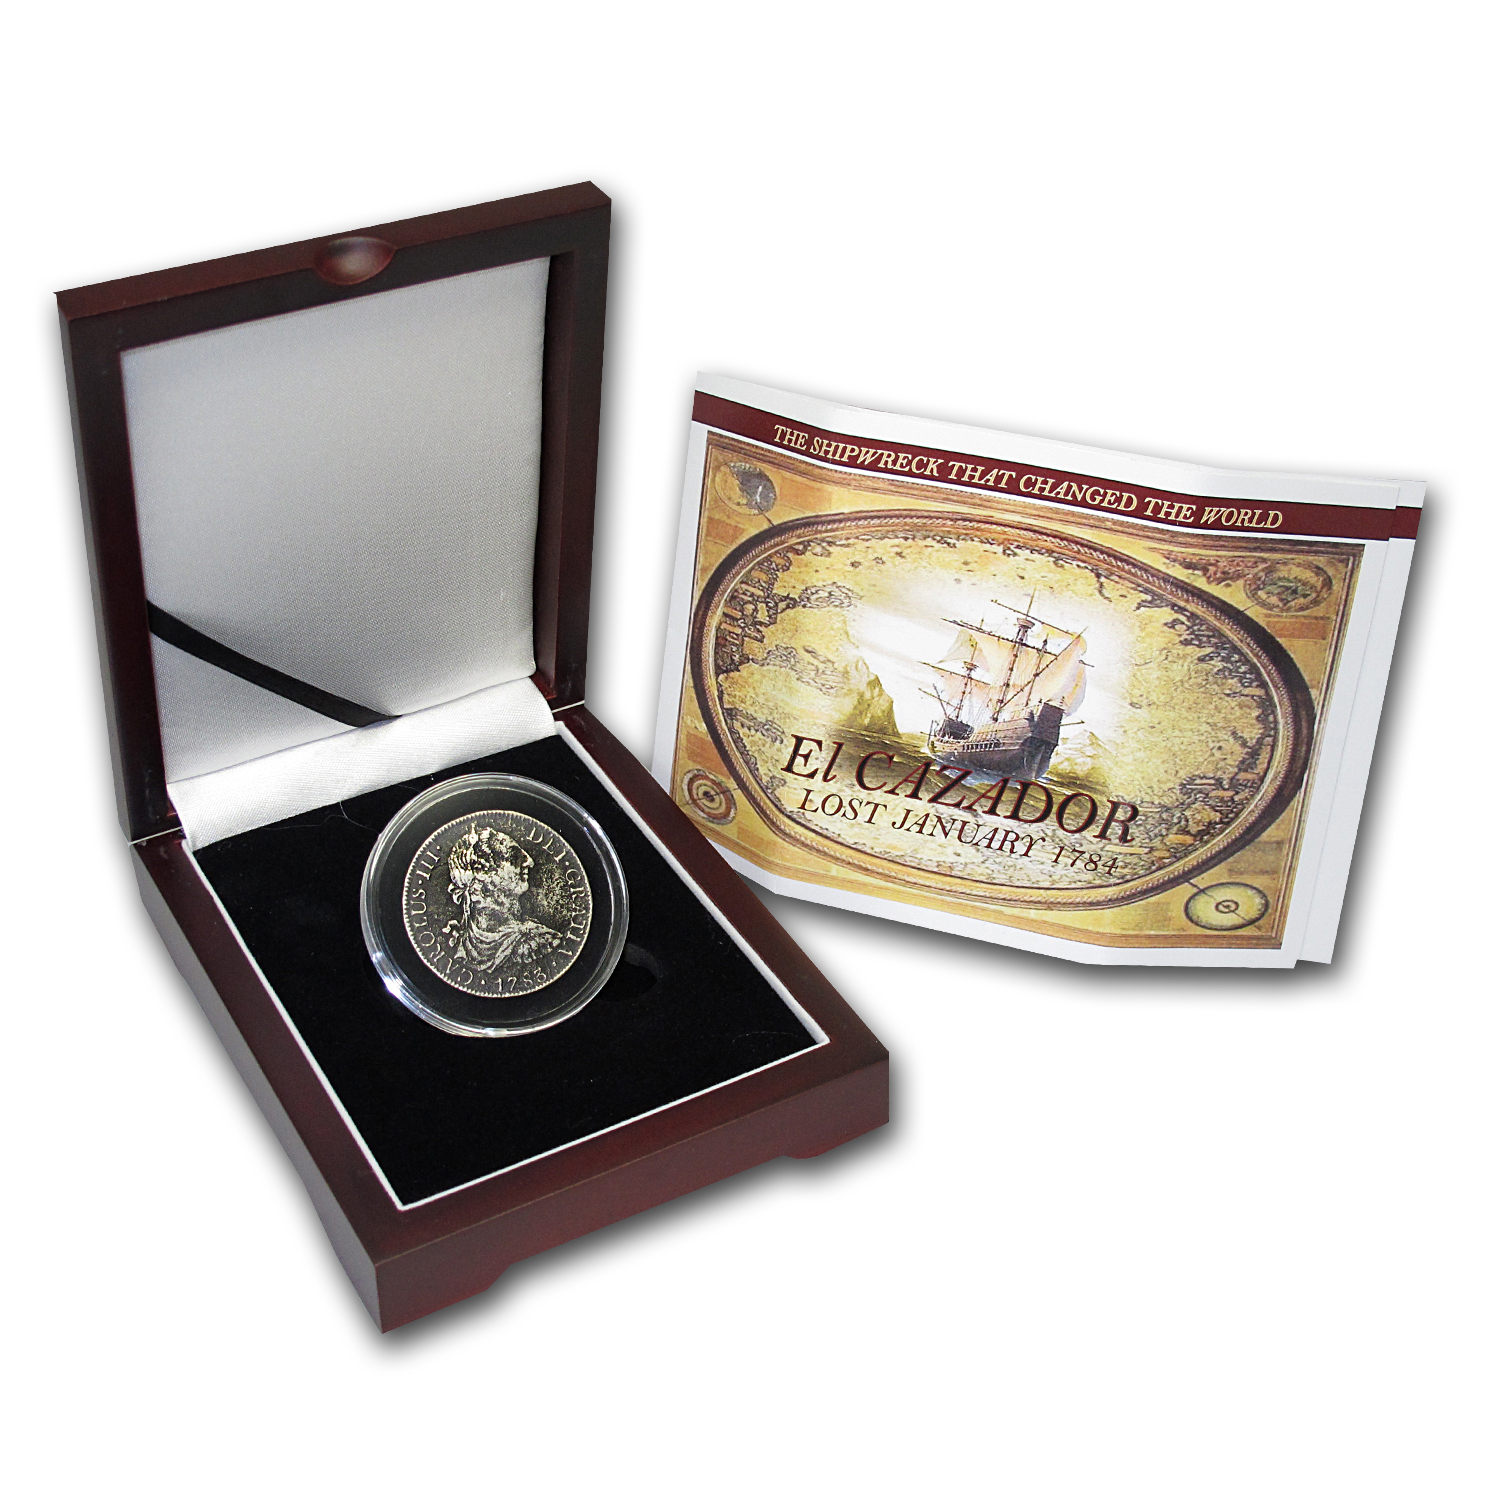 El Cazador Shipwreck 8 Reales Silver Collection